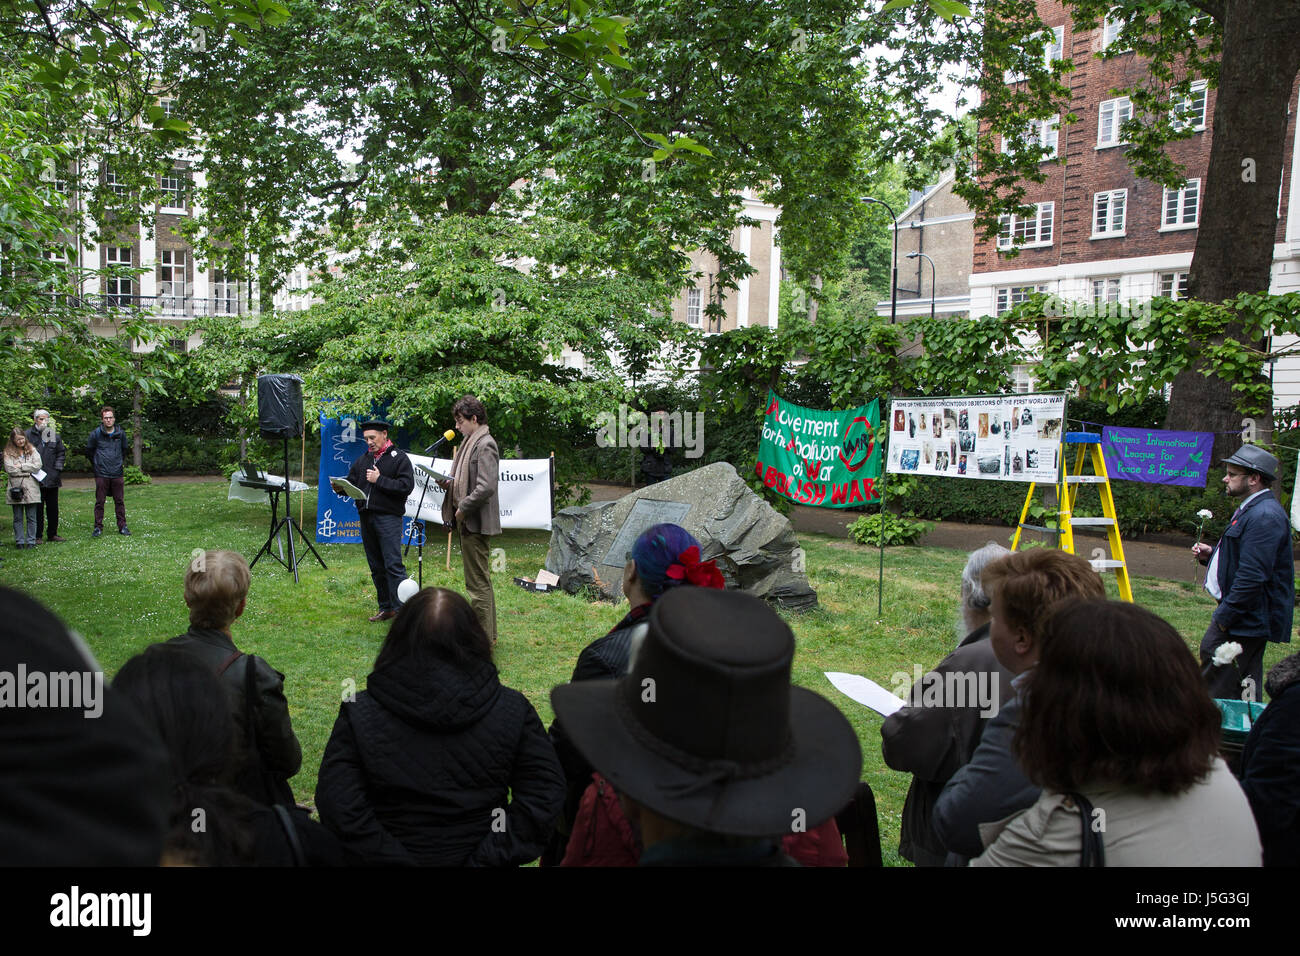 London, UK. 15th May, 2017. Sir Mark Rylance and Patrick Walshe McBride address peace campaigners in Tavistock Square - Stock Image